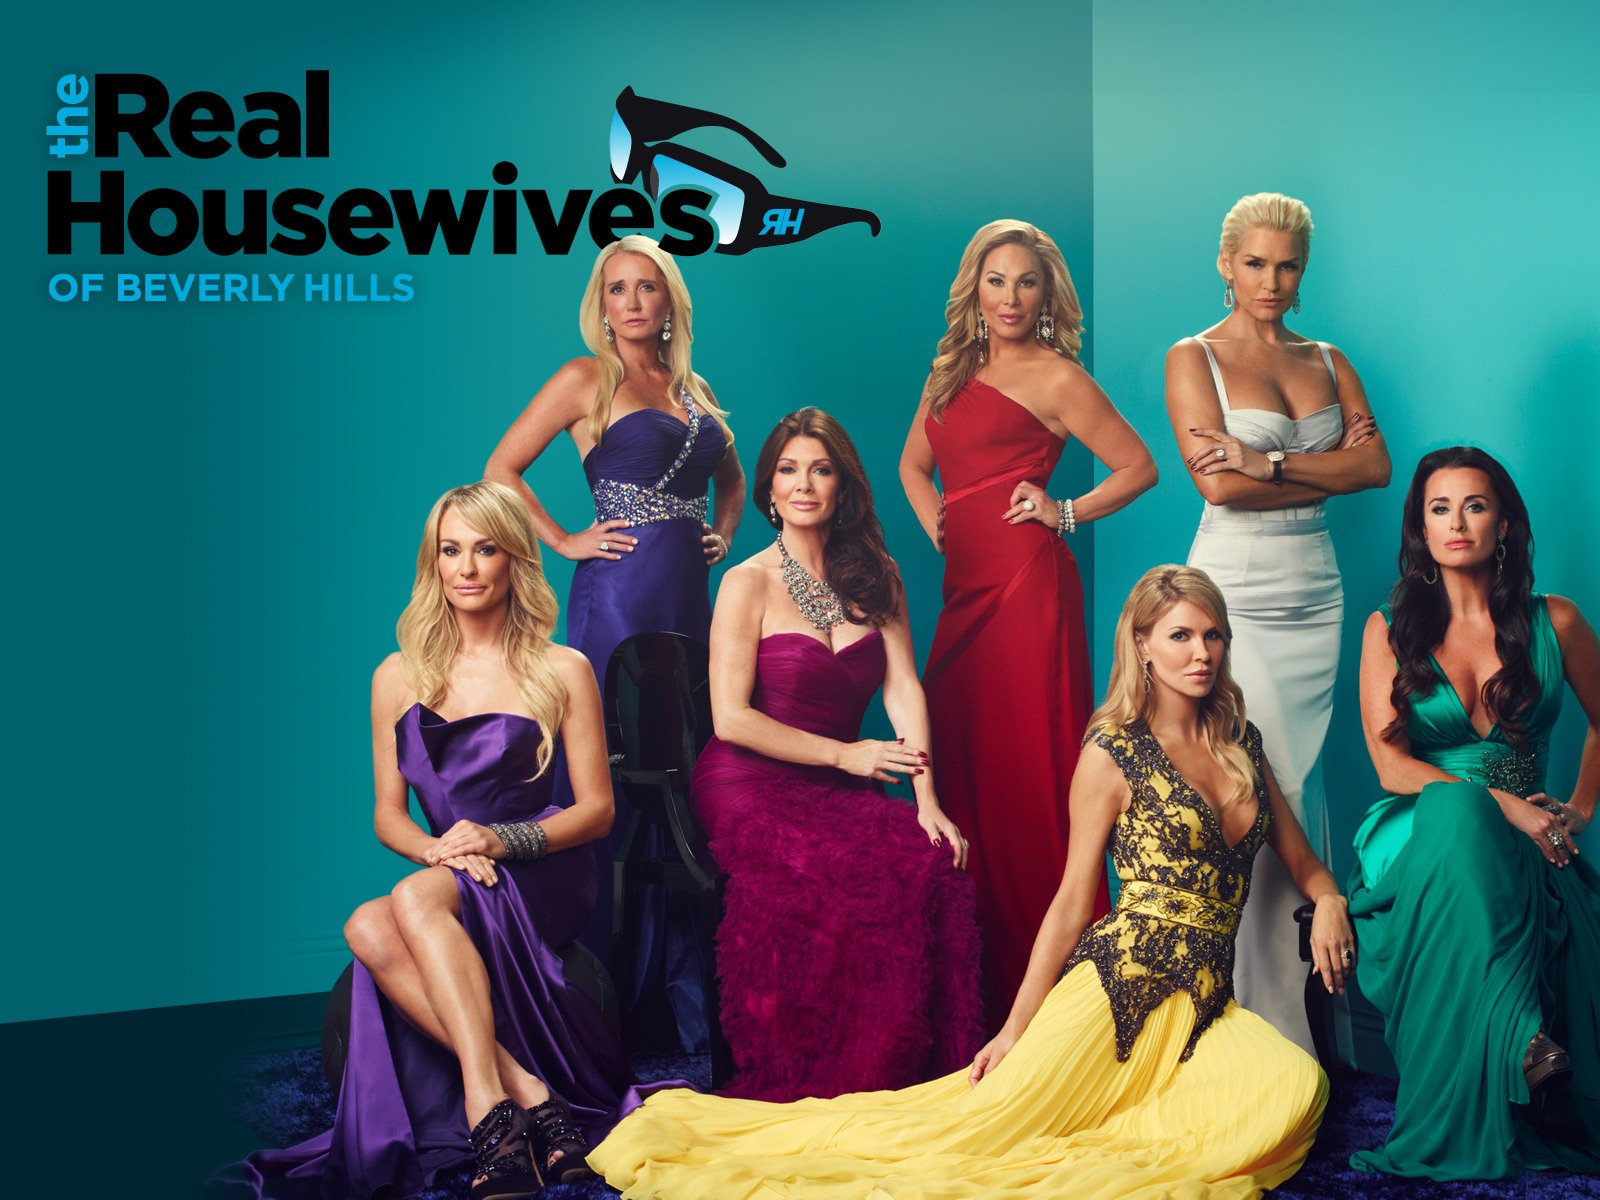 Amazon.co.uk: Watch The Real Housewives of Beverly Hills Season 3 | Prime Video